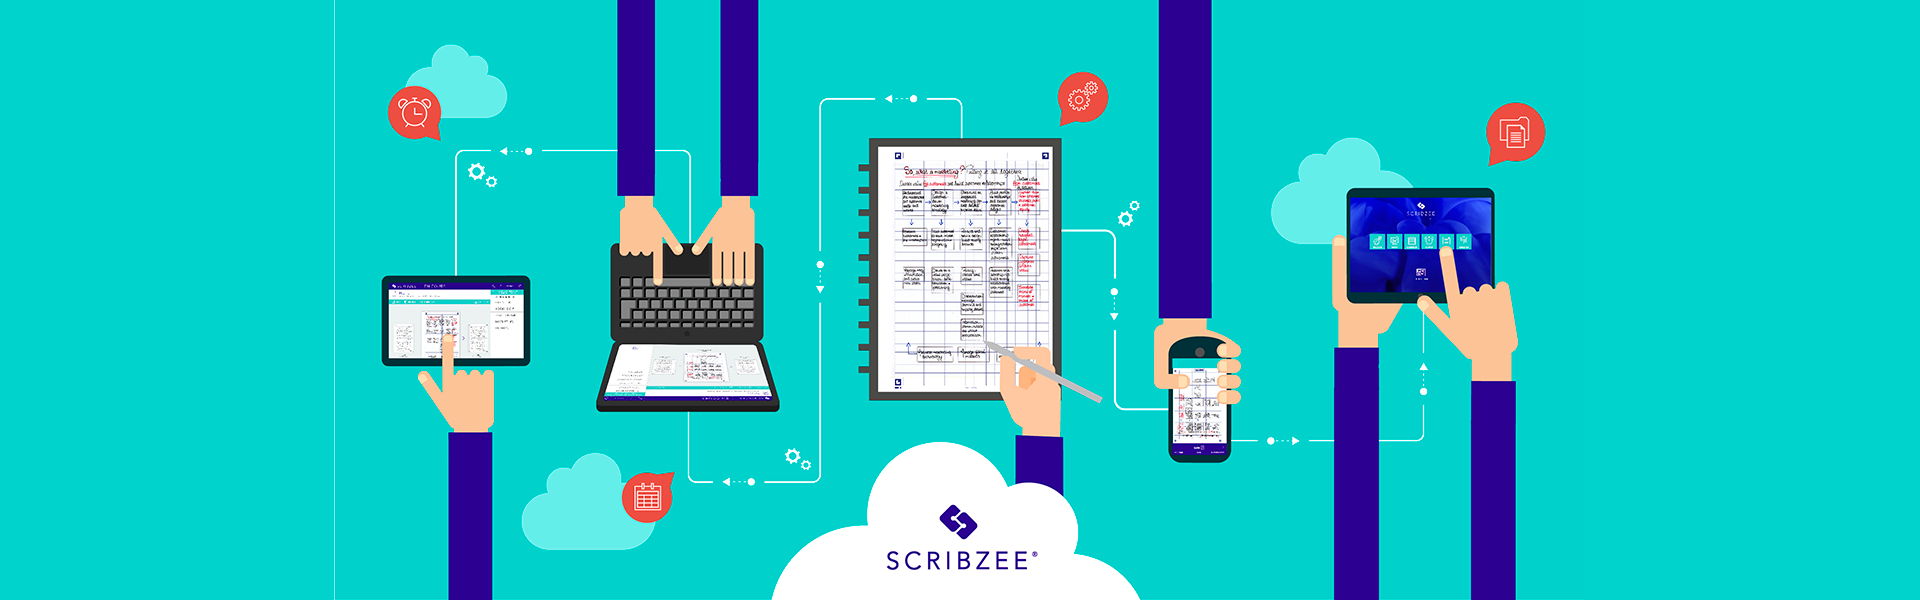 SCRIBZEE App Handwritten notes management_scan_save_access_share